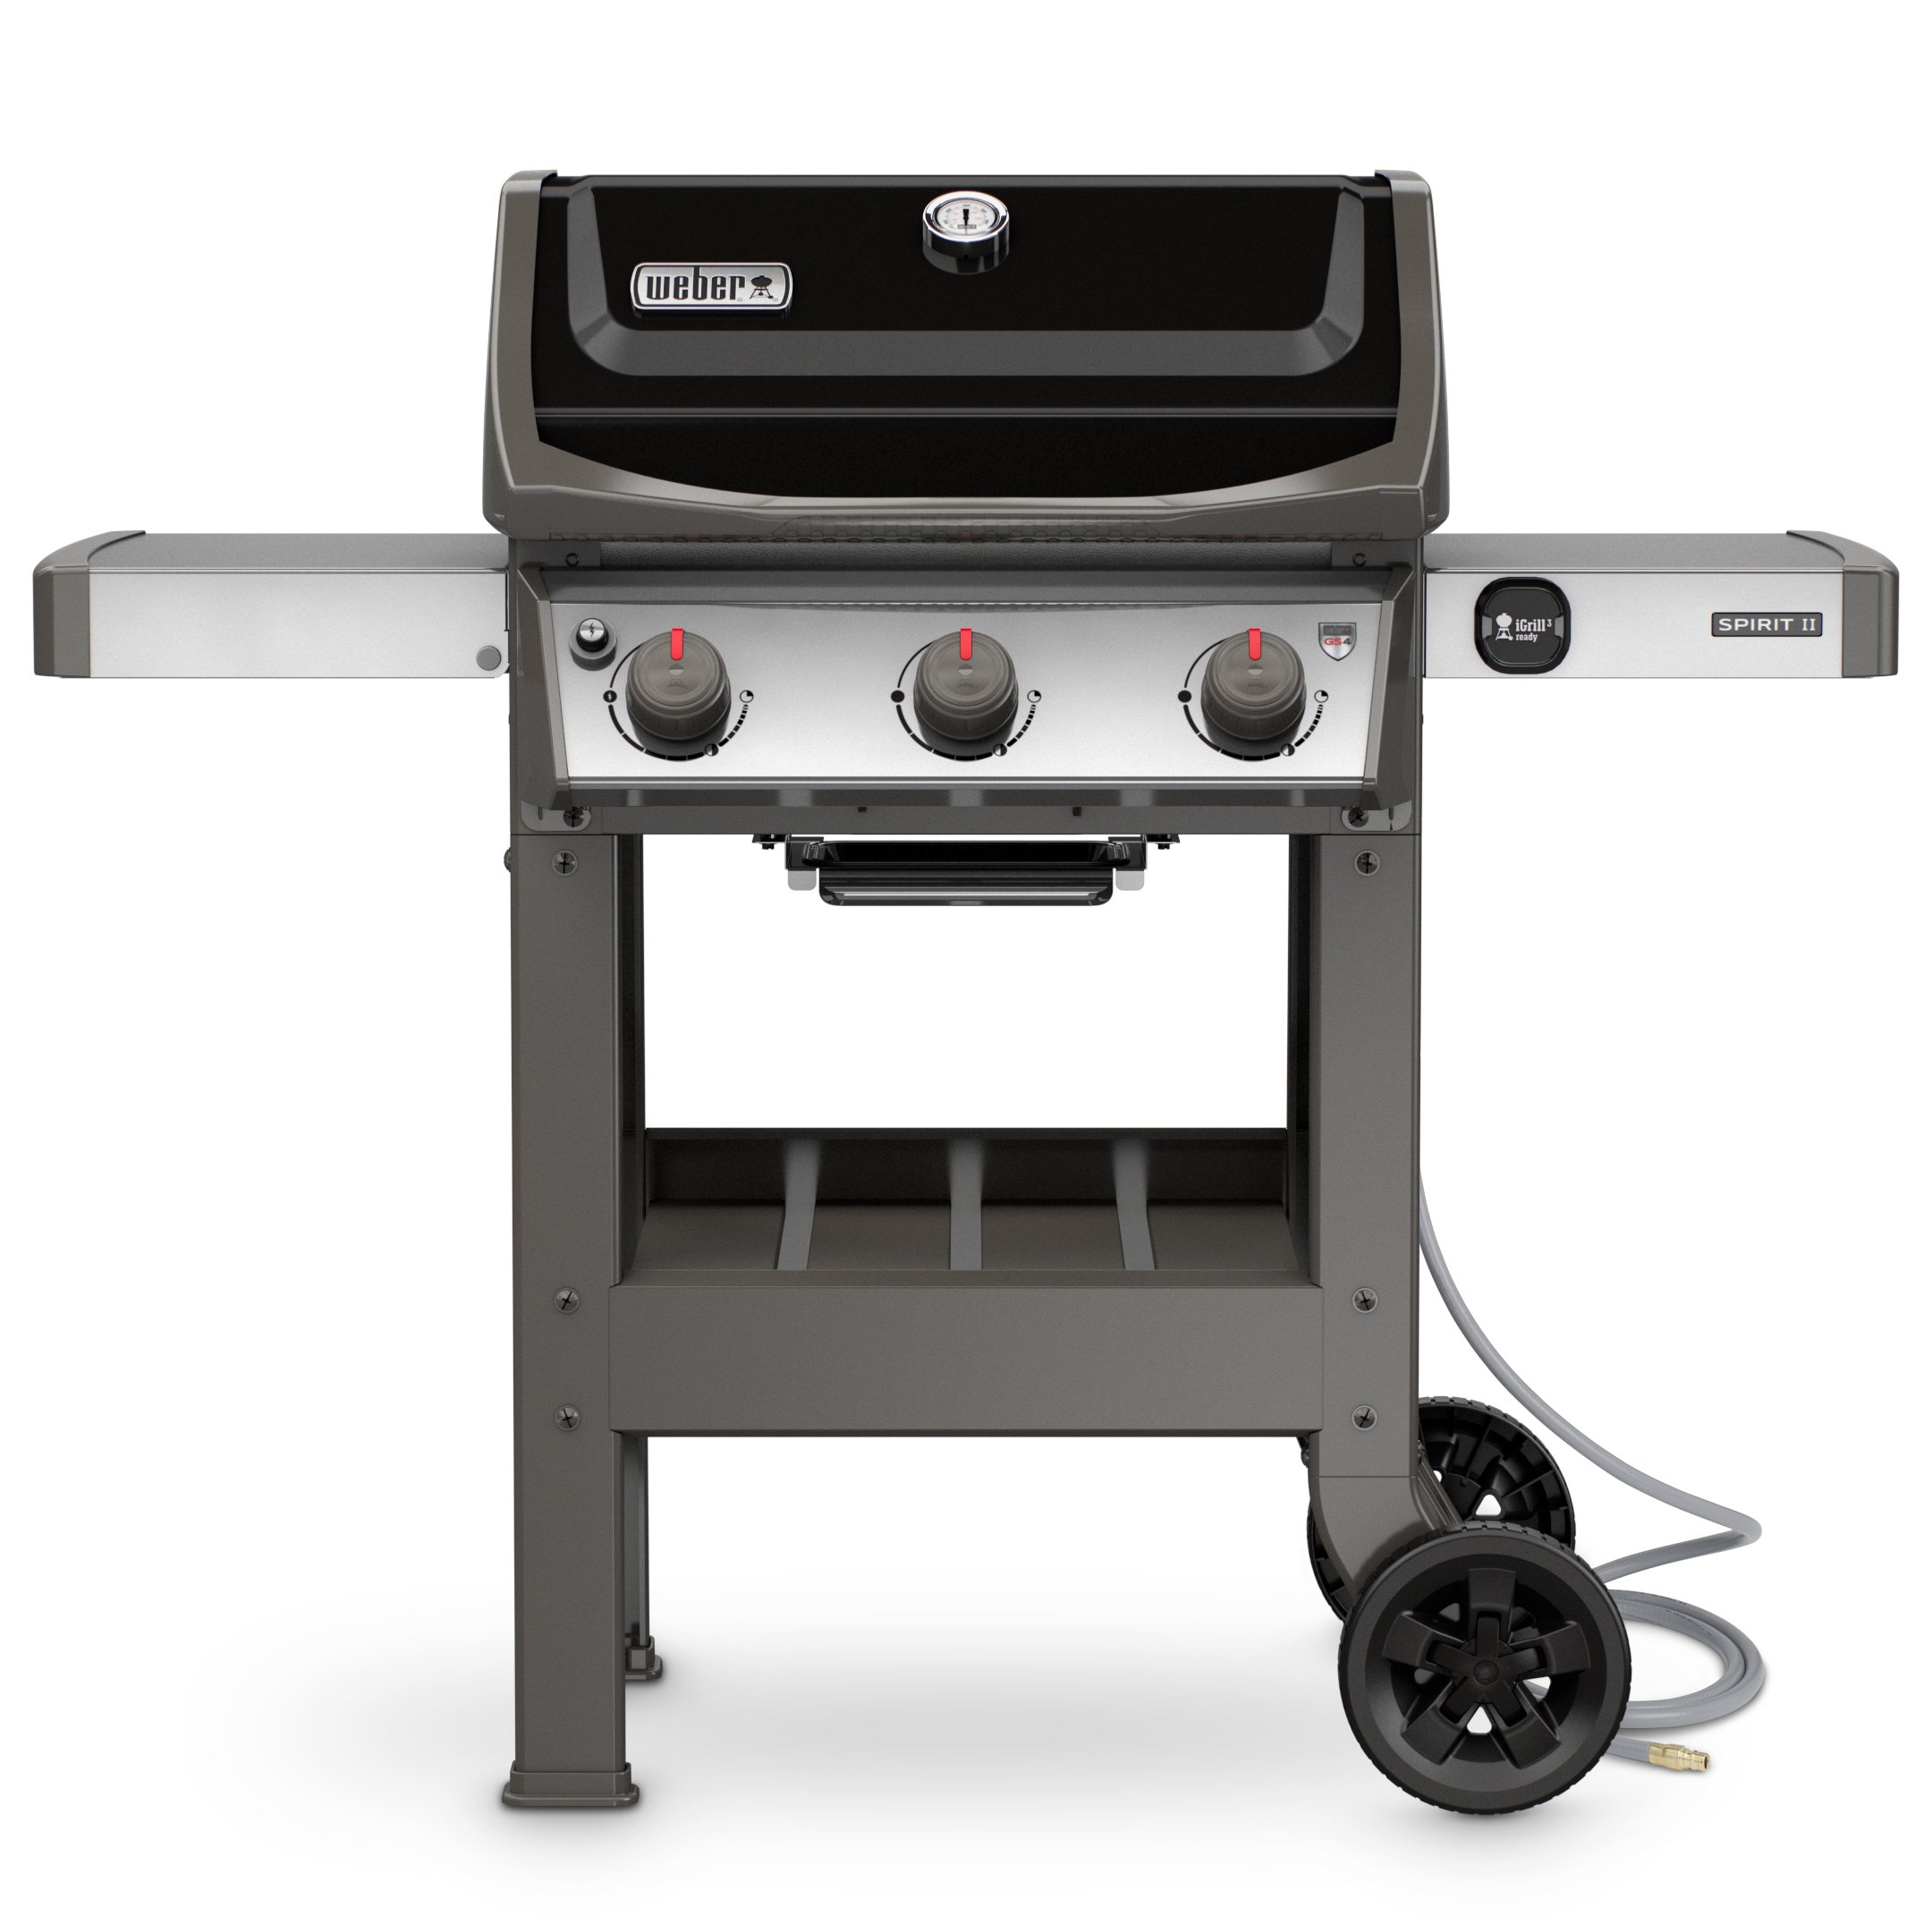 Weber 49010001 Spirit II E-310 3-Burner Natural Gas Grill, Black by Weber